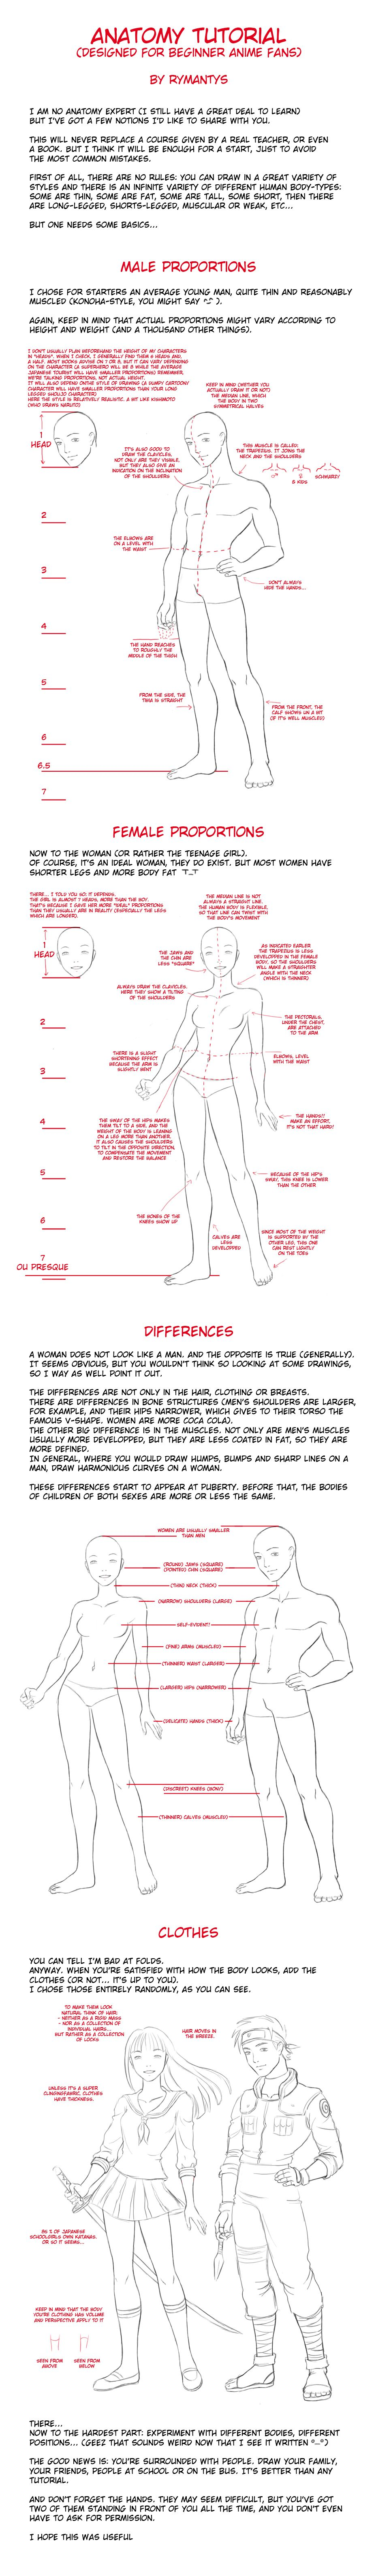 Anatomy tutorial for beginners by ~RyMantys   Future Drawing Lessons ...